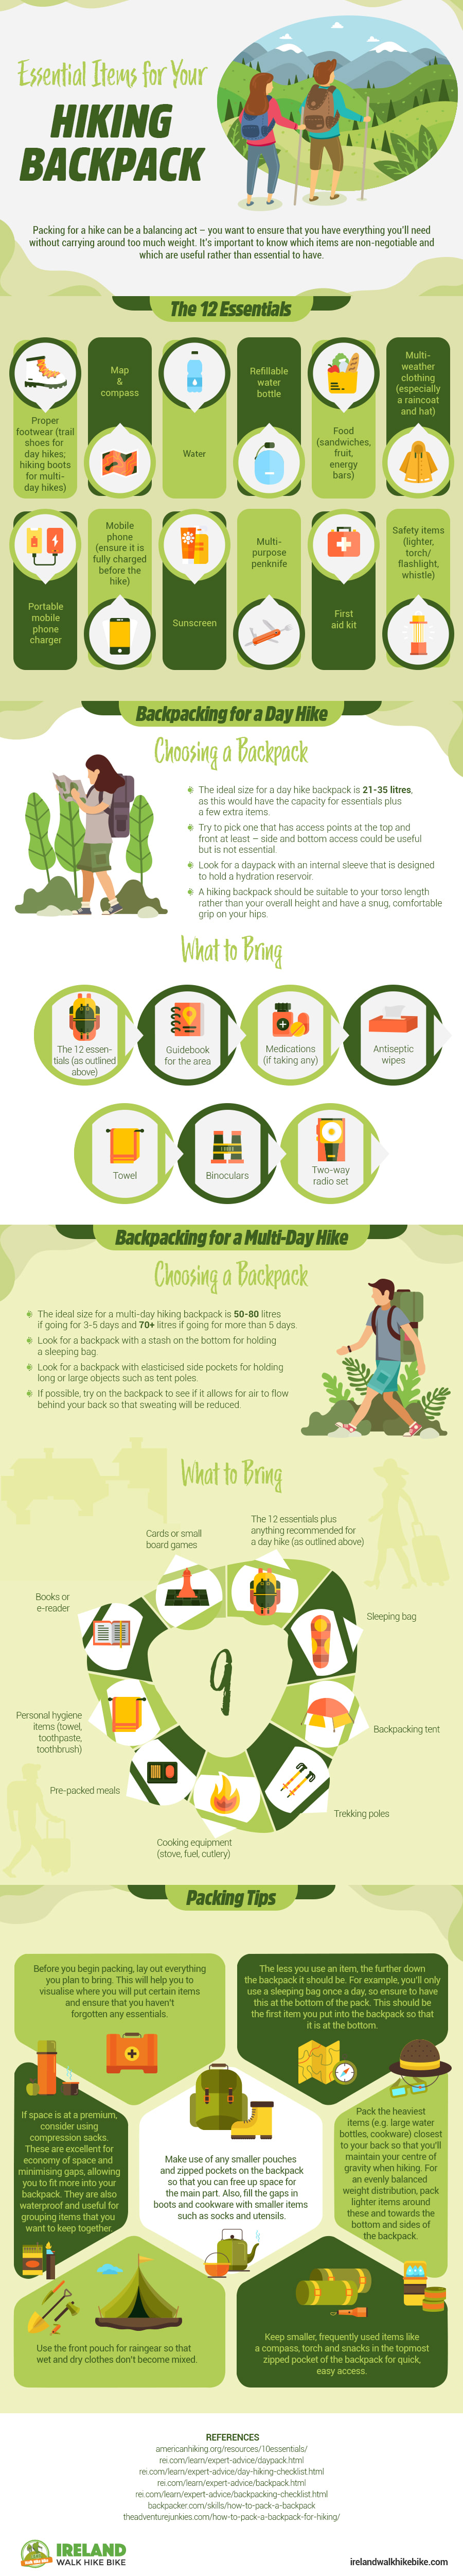 Essential Items for Your Hiking Backpack (Infographic)